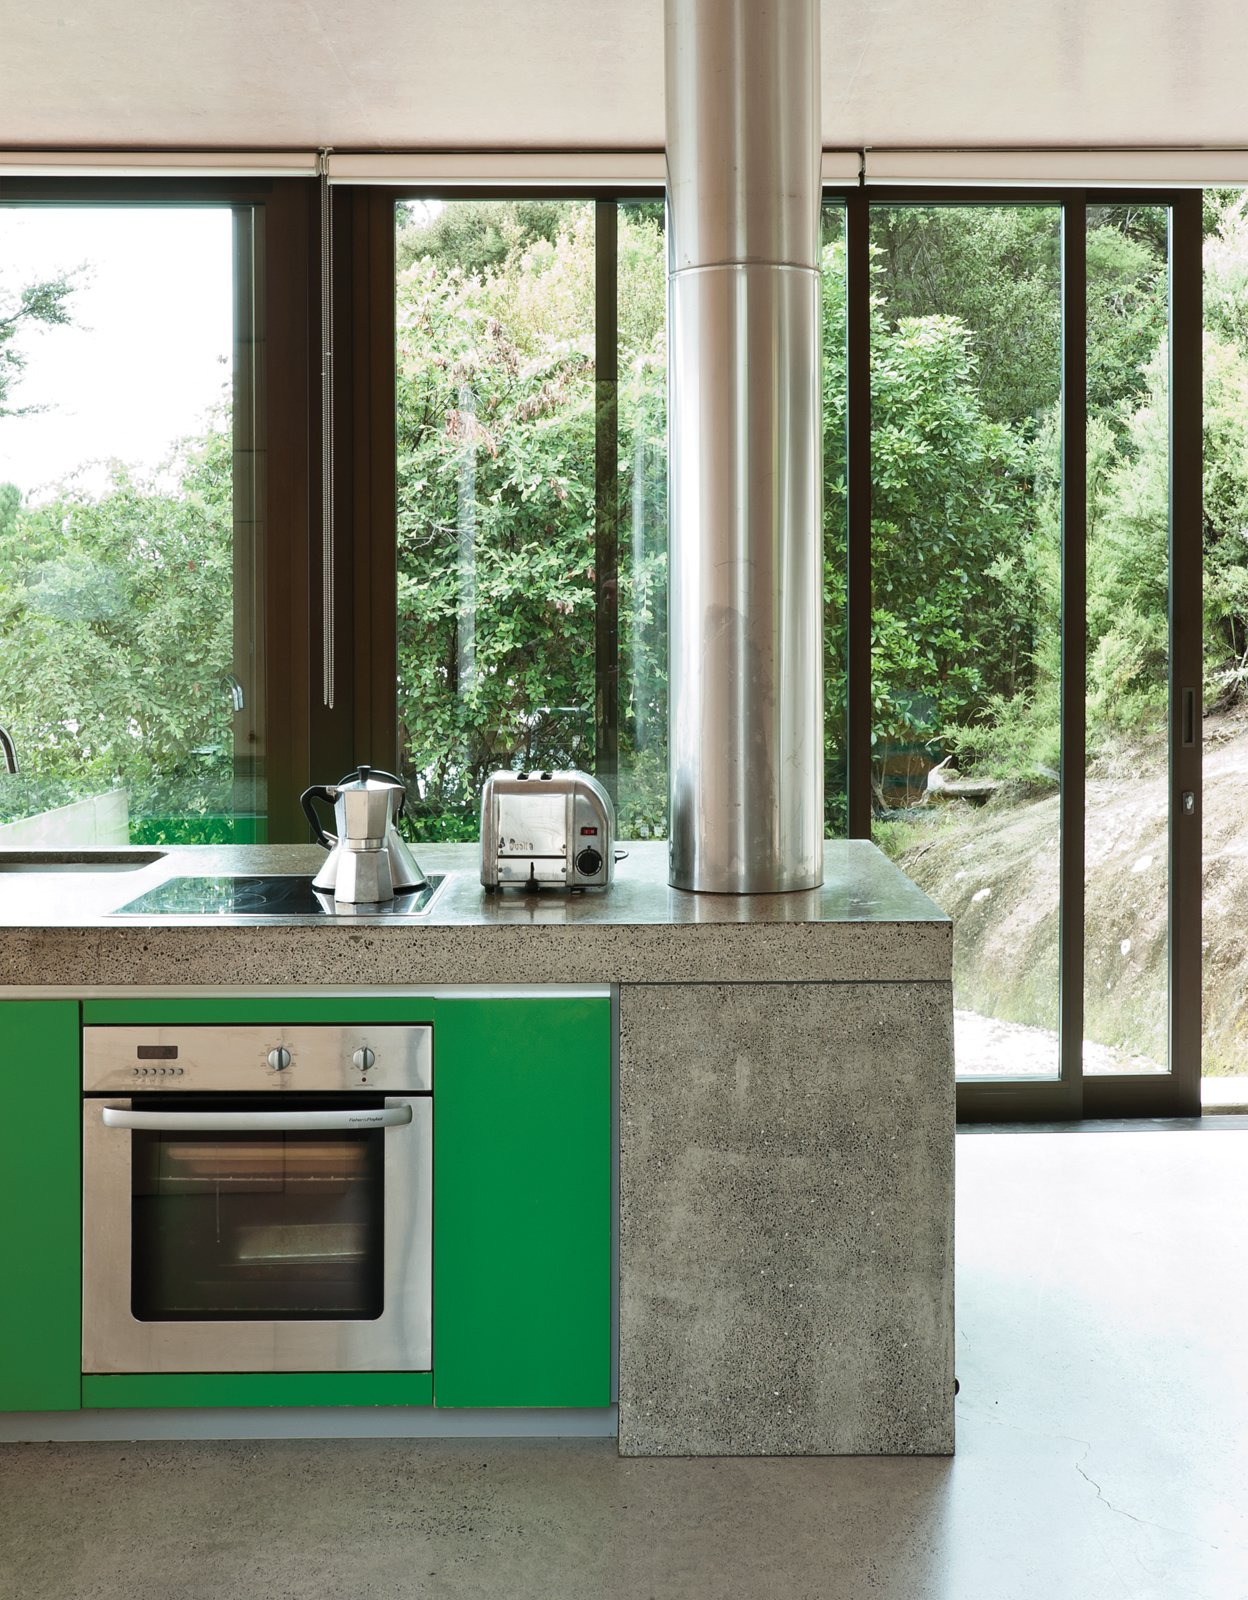 A pop of color in the kitchen cabinets refers to the native greenery outside. Tagged: Kitchen, Concrete Counter, Cooktops, and Wall Oven.  Photo 3 of 25 in Make Your Parents Happy by Building Them a House